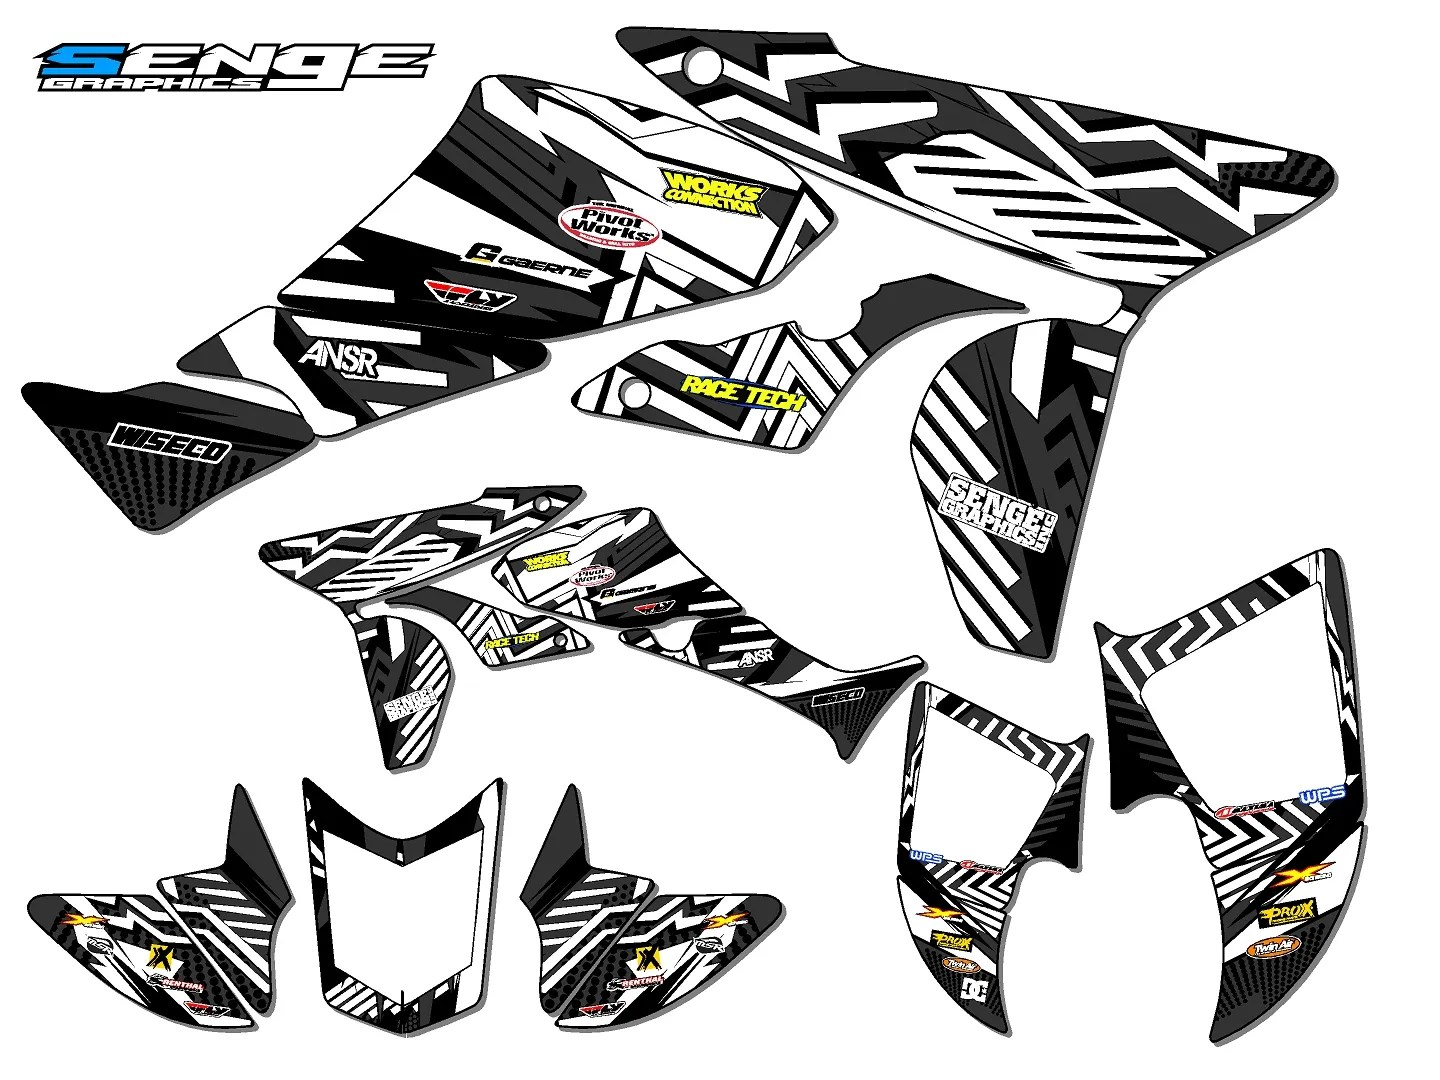 2006-2017 TRX450R TRX 450R 450 R GRAPHICS DECALS 2016 2015